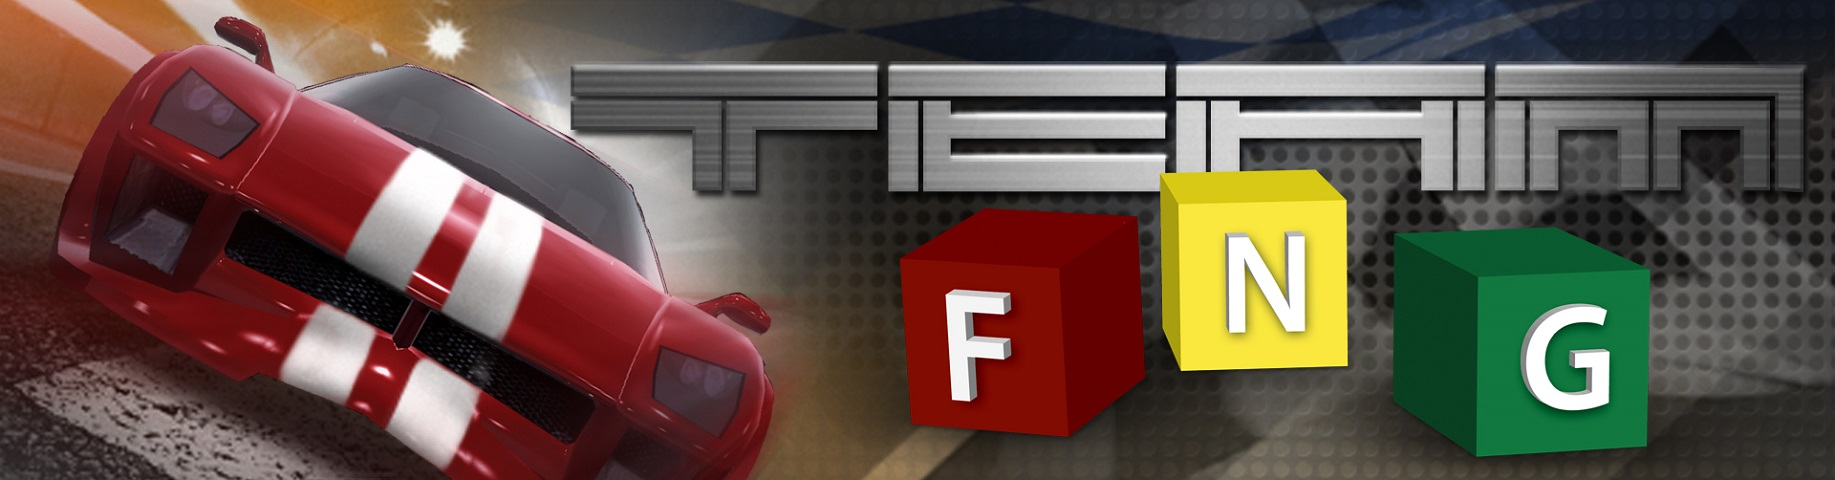 Team FNG Blog logo wallpaper wide(resized)